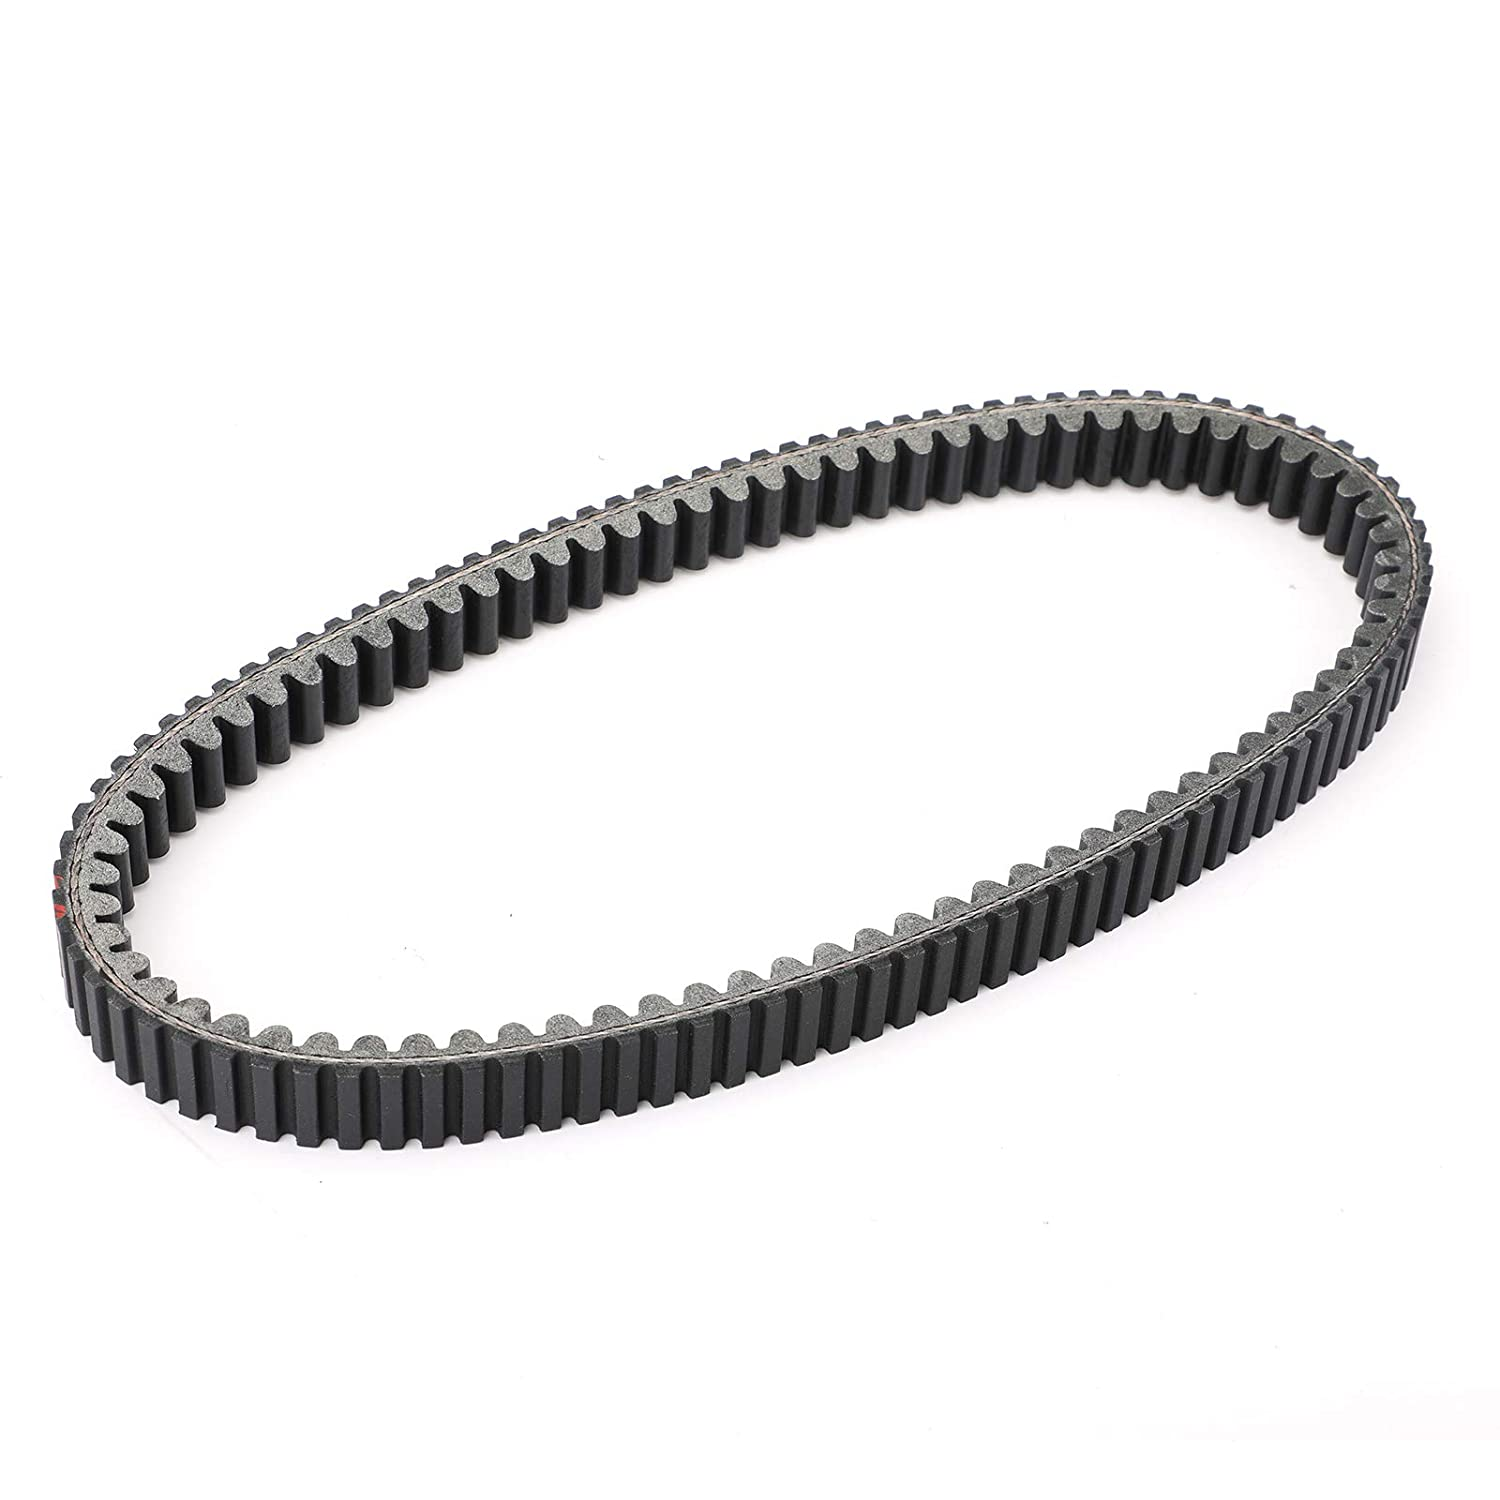 Topteng Drive Belt,Severe Duty Drive Belt with Well Designed Durable Smooth CVT Non-slip Heat Dissipation for A-eon Urban//Elite//Quadro 3D 350 11-15 Scooter